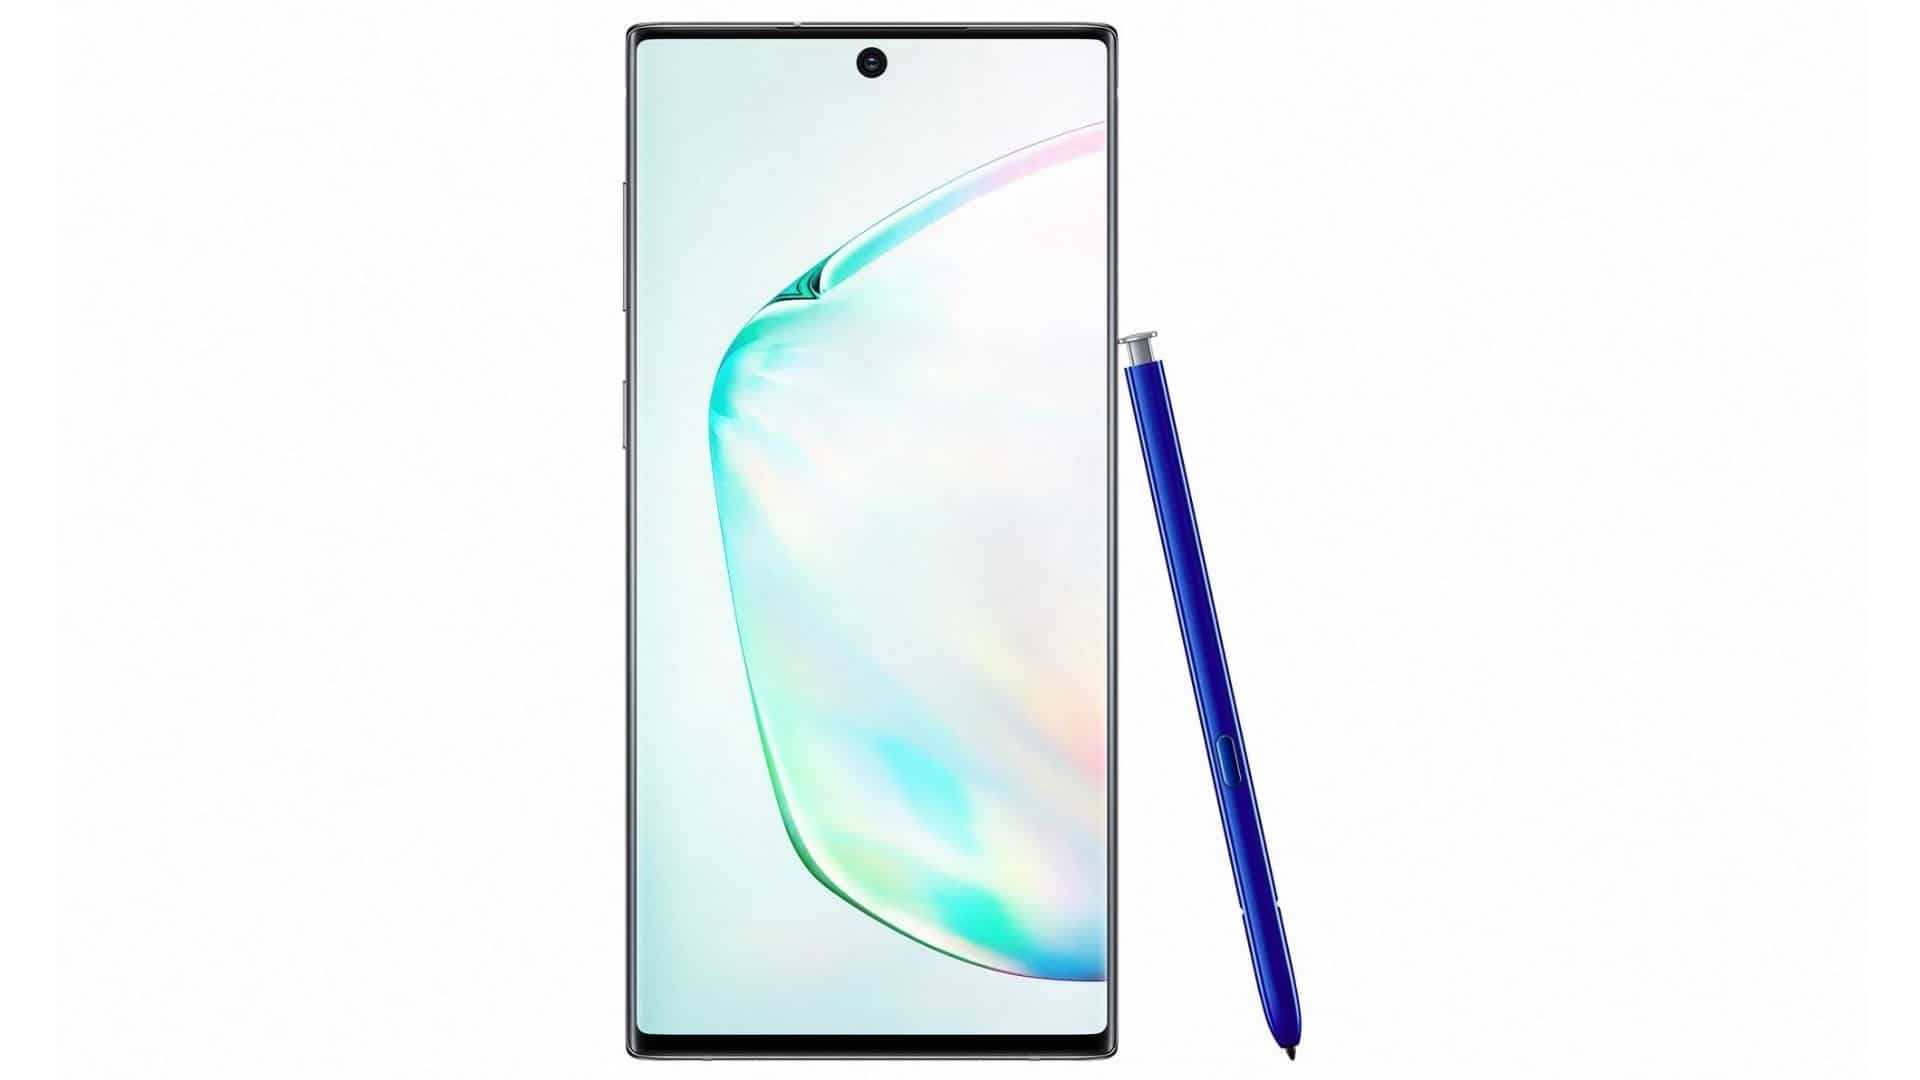 The Galaxy Note 10 launched with another high-end variant that's the Galaxy Note 10+. Samsung also moved to the punch-hole design with the Galaxy Note 10. It's the biggest 6.3-inch screen on a Note so far. The regular Galaxy Note 10 has a 6.3-inch display. The smartphone has four rear cameras, and 12GB of RAM.